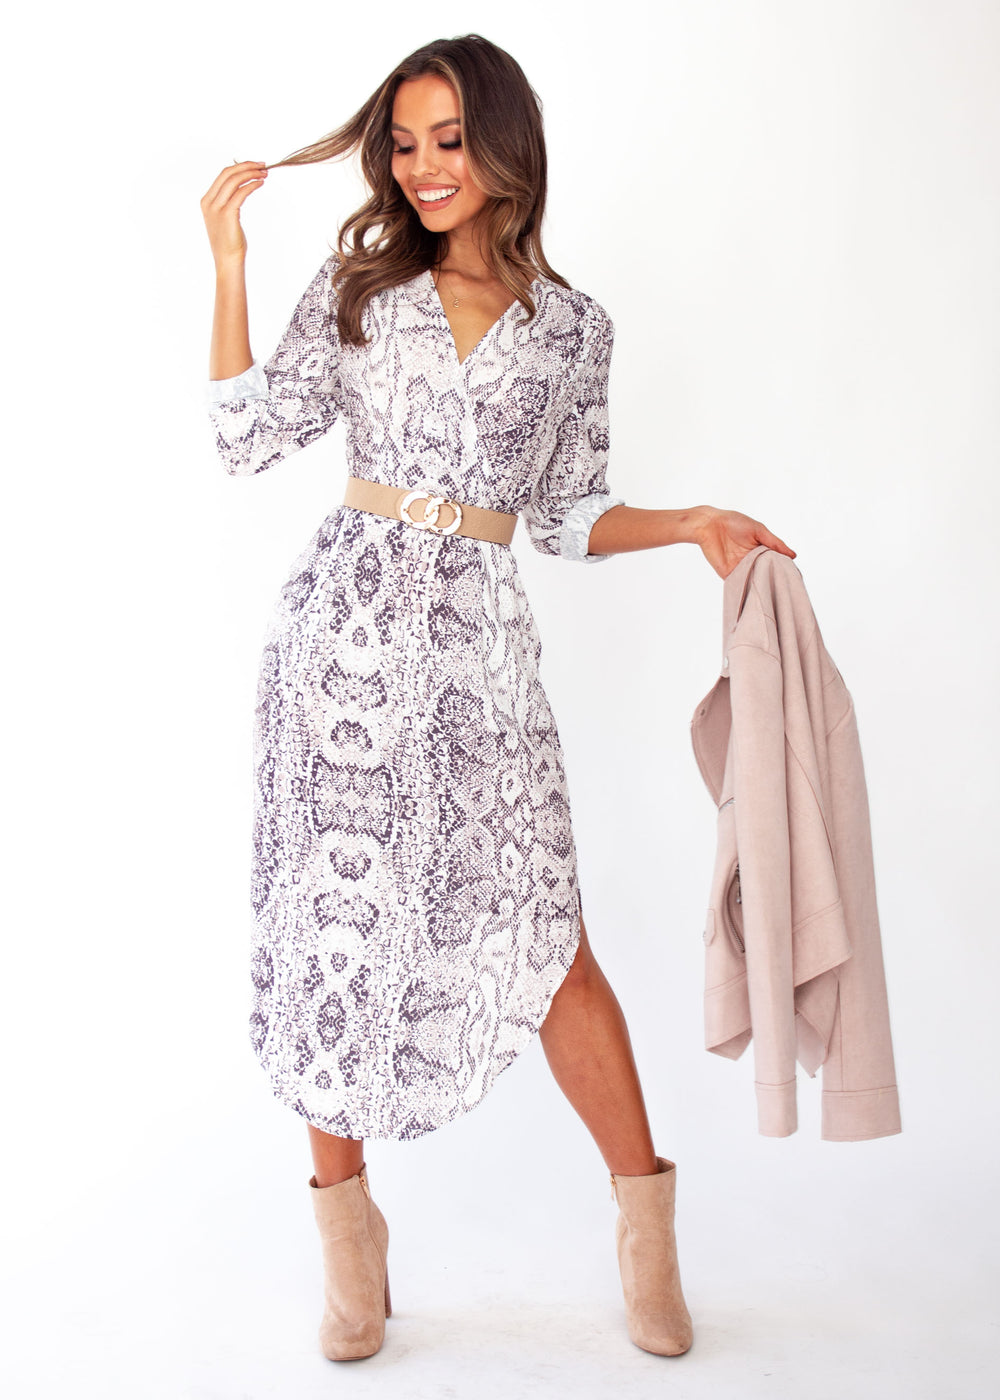 2edfea124112 Ladies Lace Dresses Australia - Aztec Stone and Reclamations